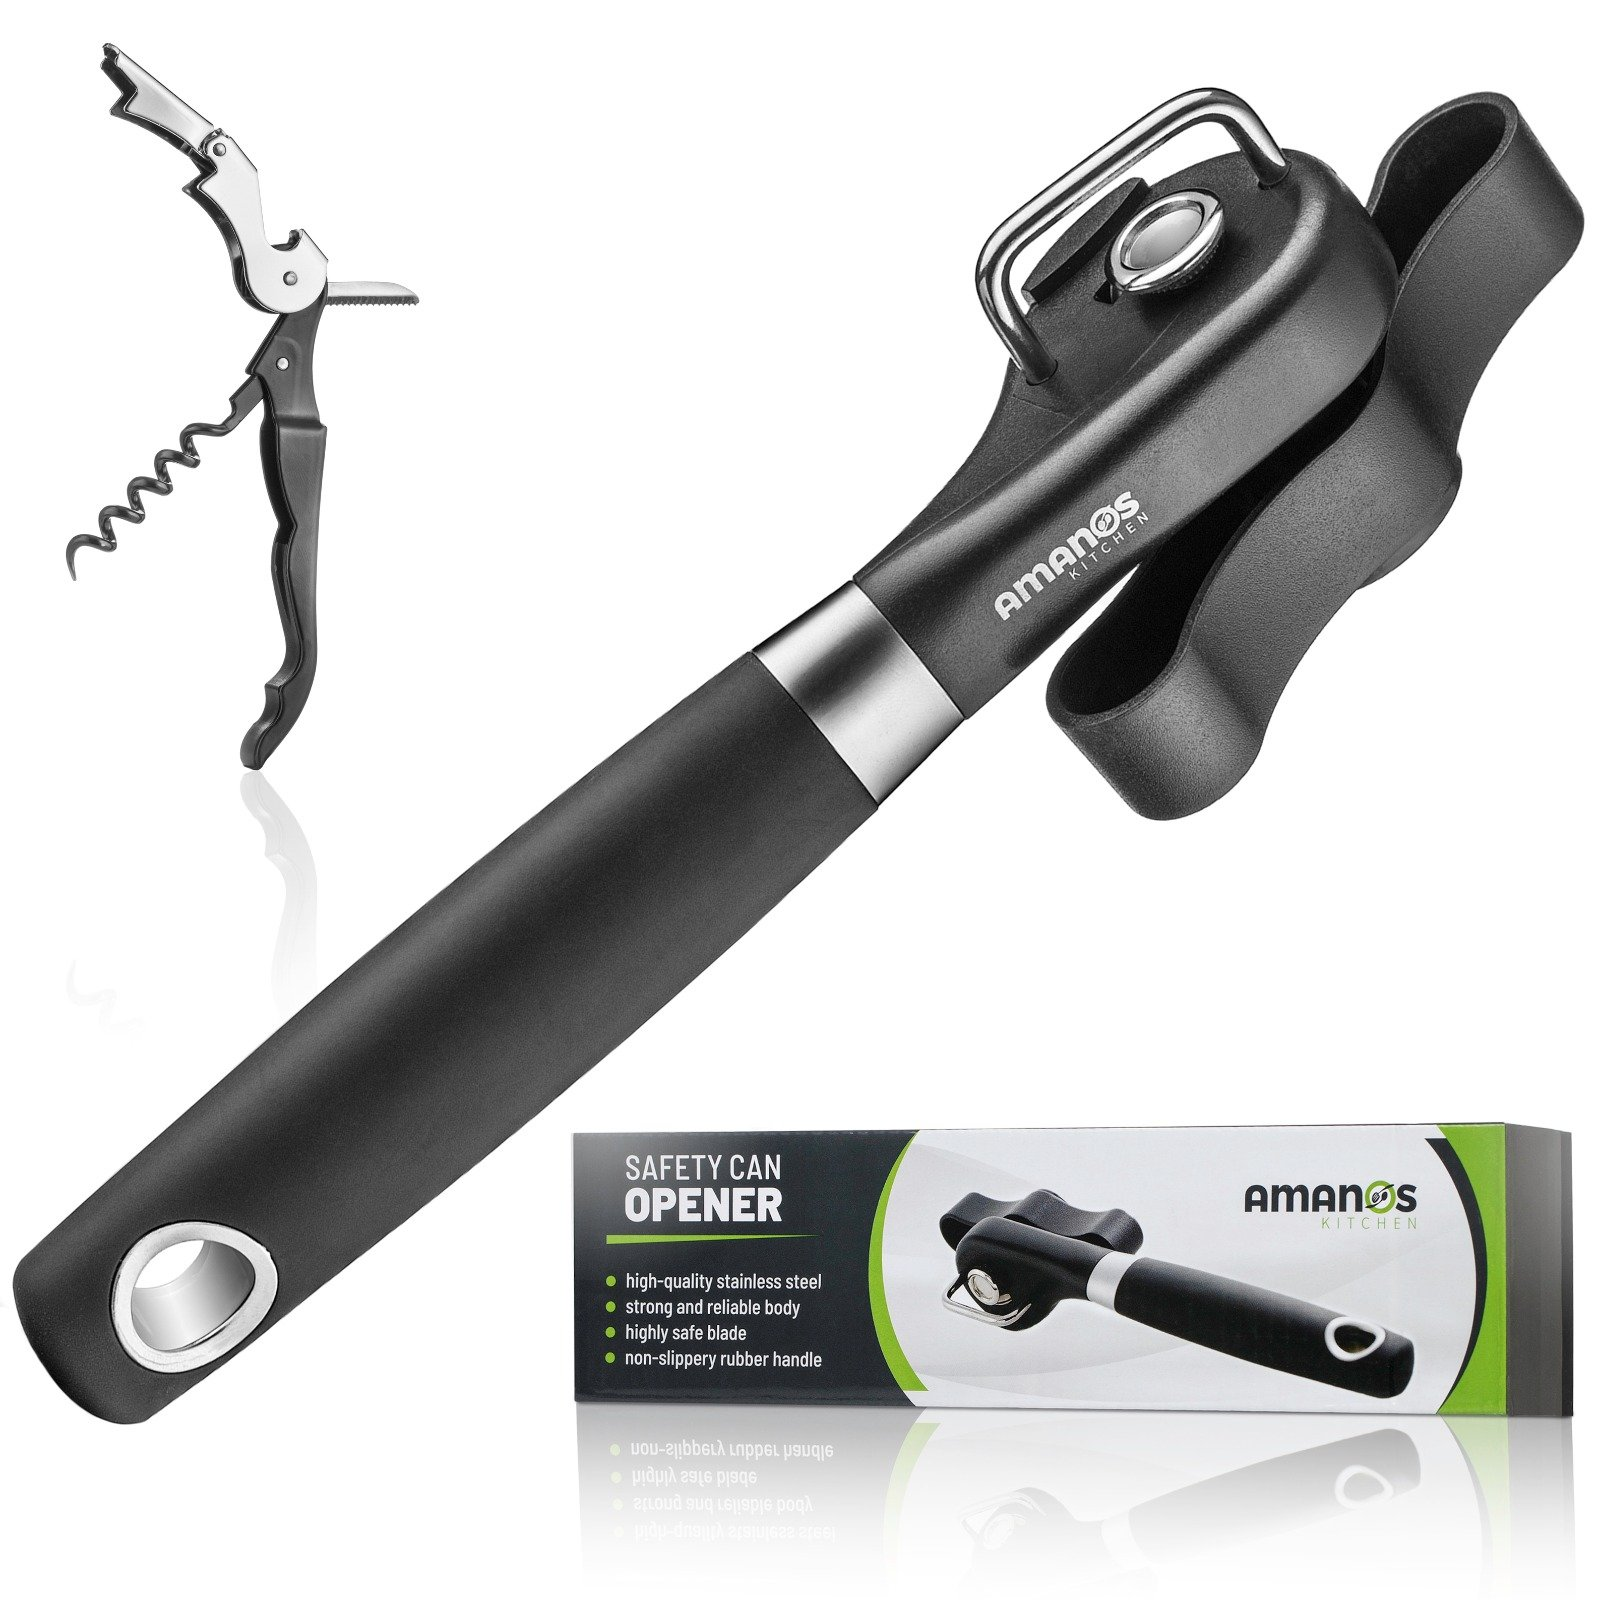 Manual Safety Can Opener Smooth Edges | Professional Ergonomic Soft Grip Handle Kitchen Cans Opener | Hand Held Dishwasher Safe Stainless Steel - Black + Wine Bottle Opener